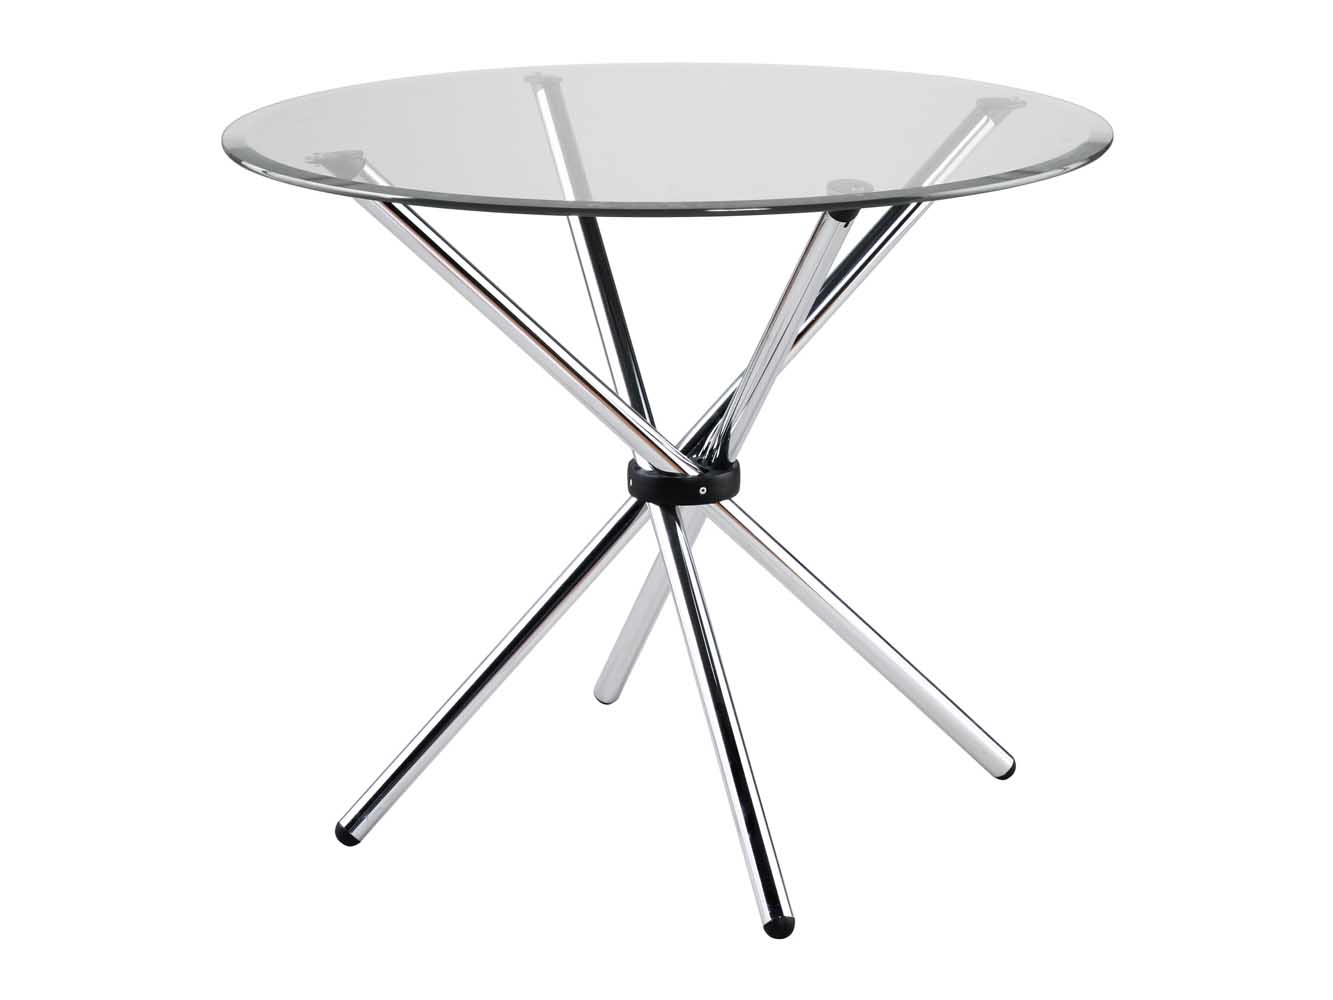 Hydra Small Round Tempered Glasses Dining Table With  : hydrachrome1 from www.zurifurniture.com size 1333 x 1000 jpeg 65kB